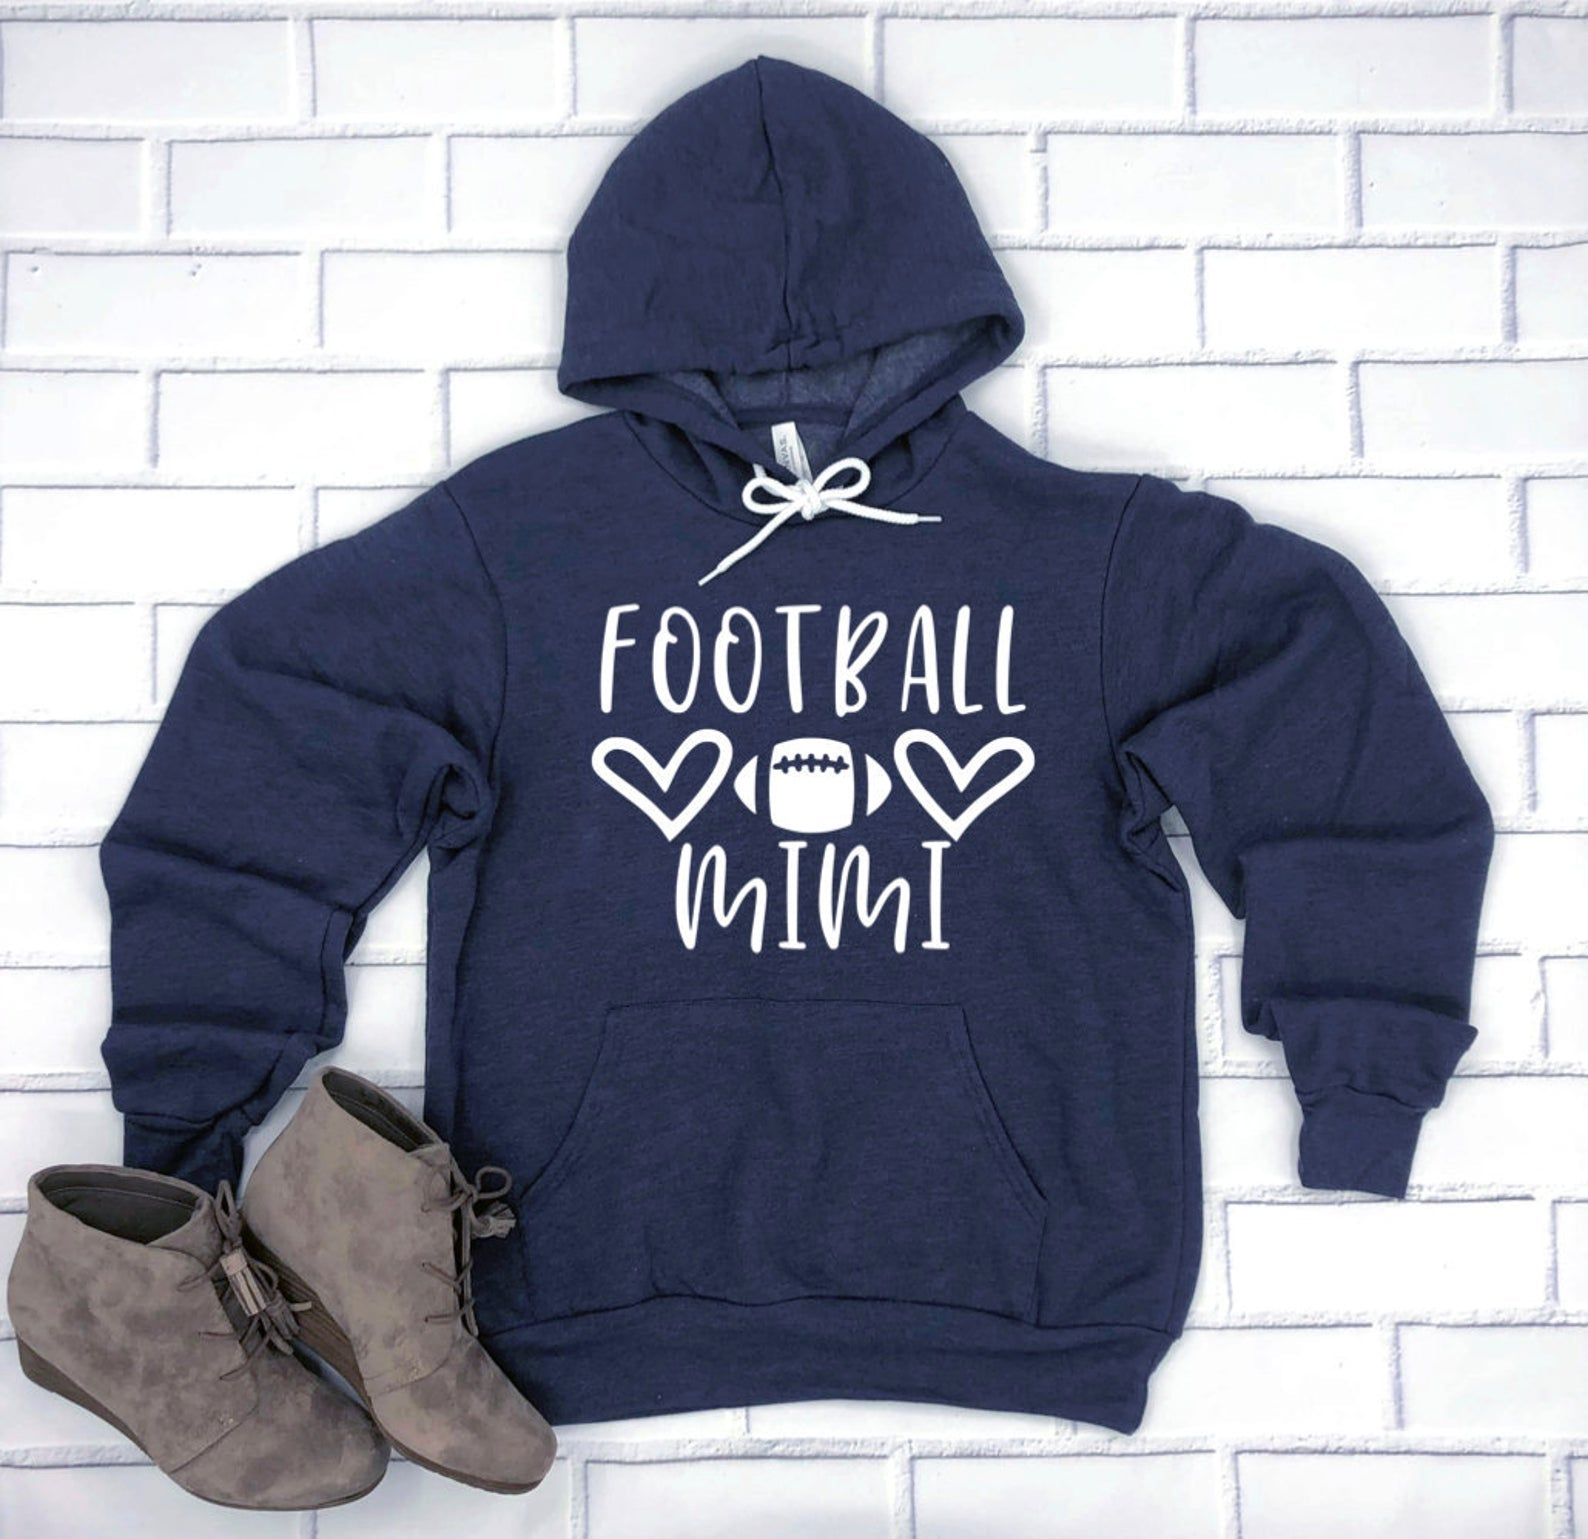 Football Mimi Hoodie Pullover Sweatshirt - Mimi Hoodie - Football Family Hoodies - Football Mimi Sweatshirt - Gift For Mimi